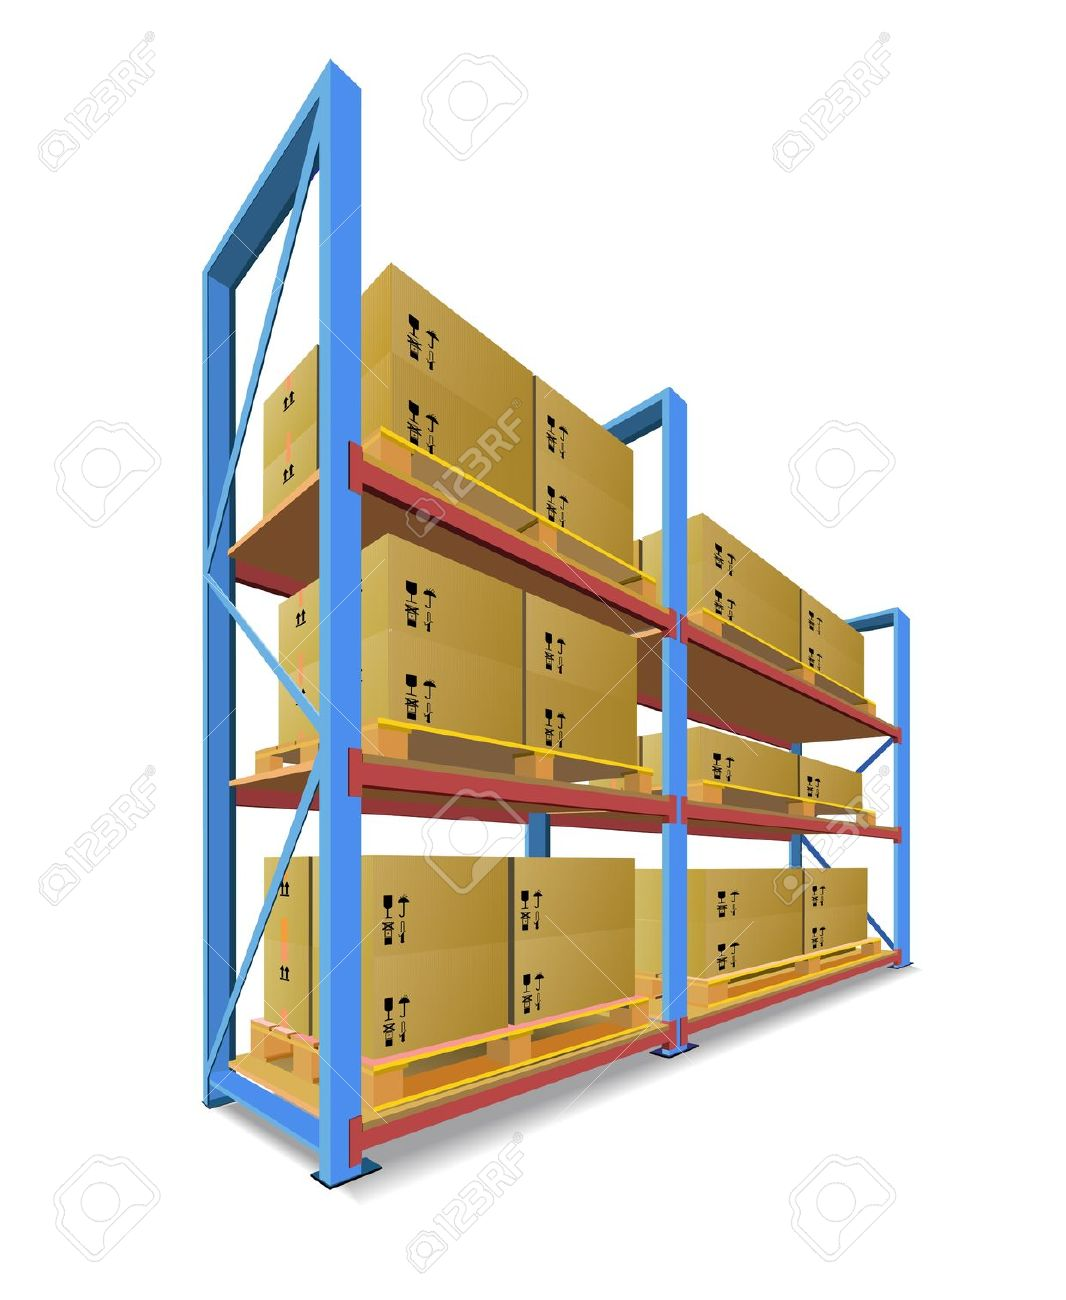 Warehouse pictures clip art.